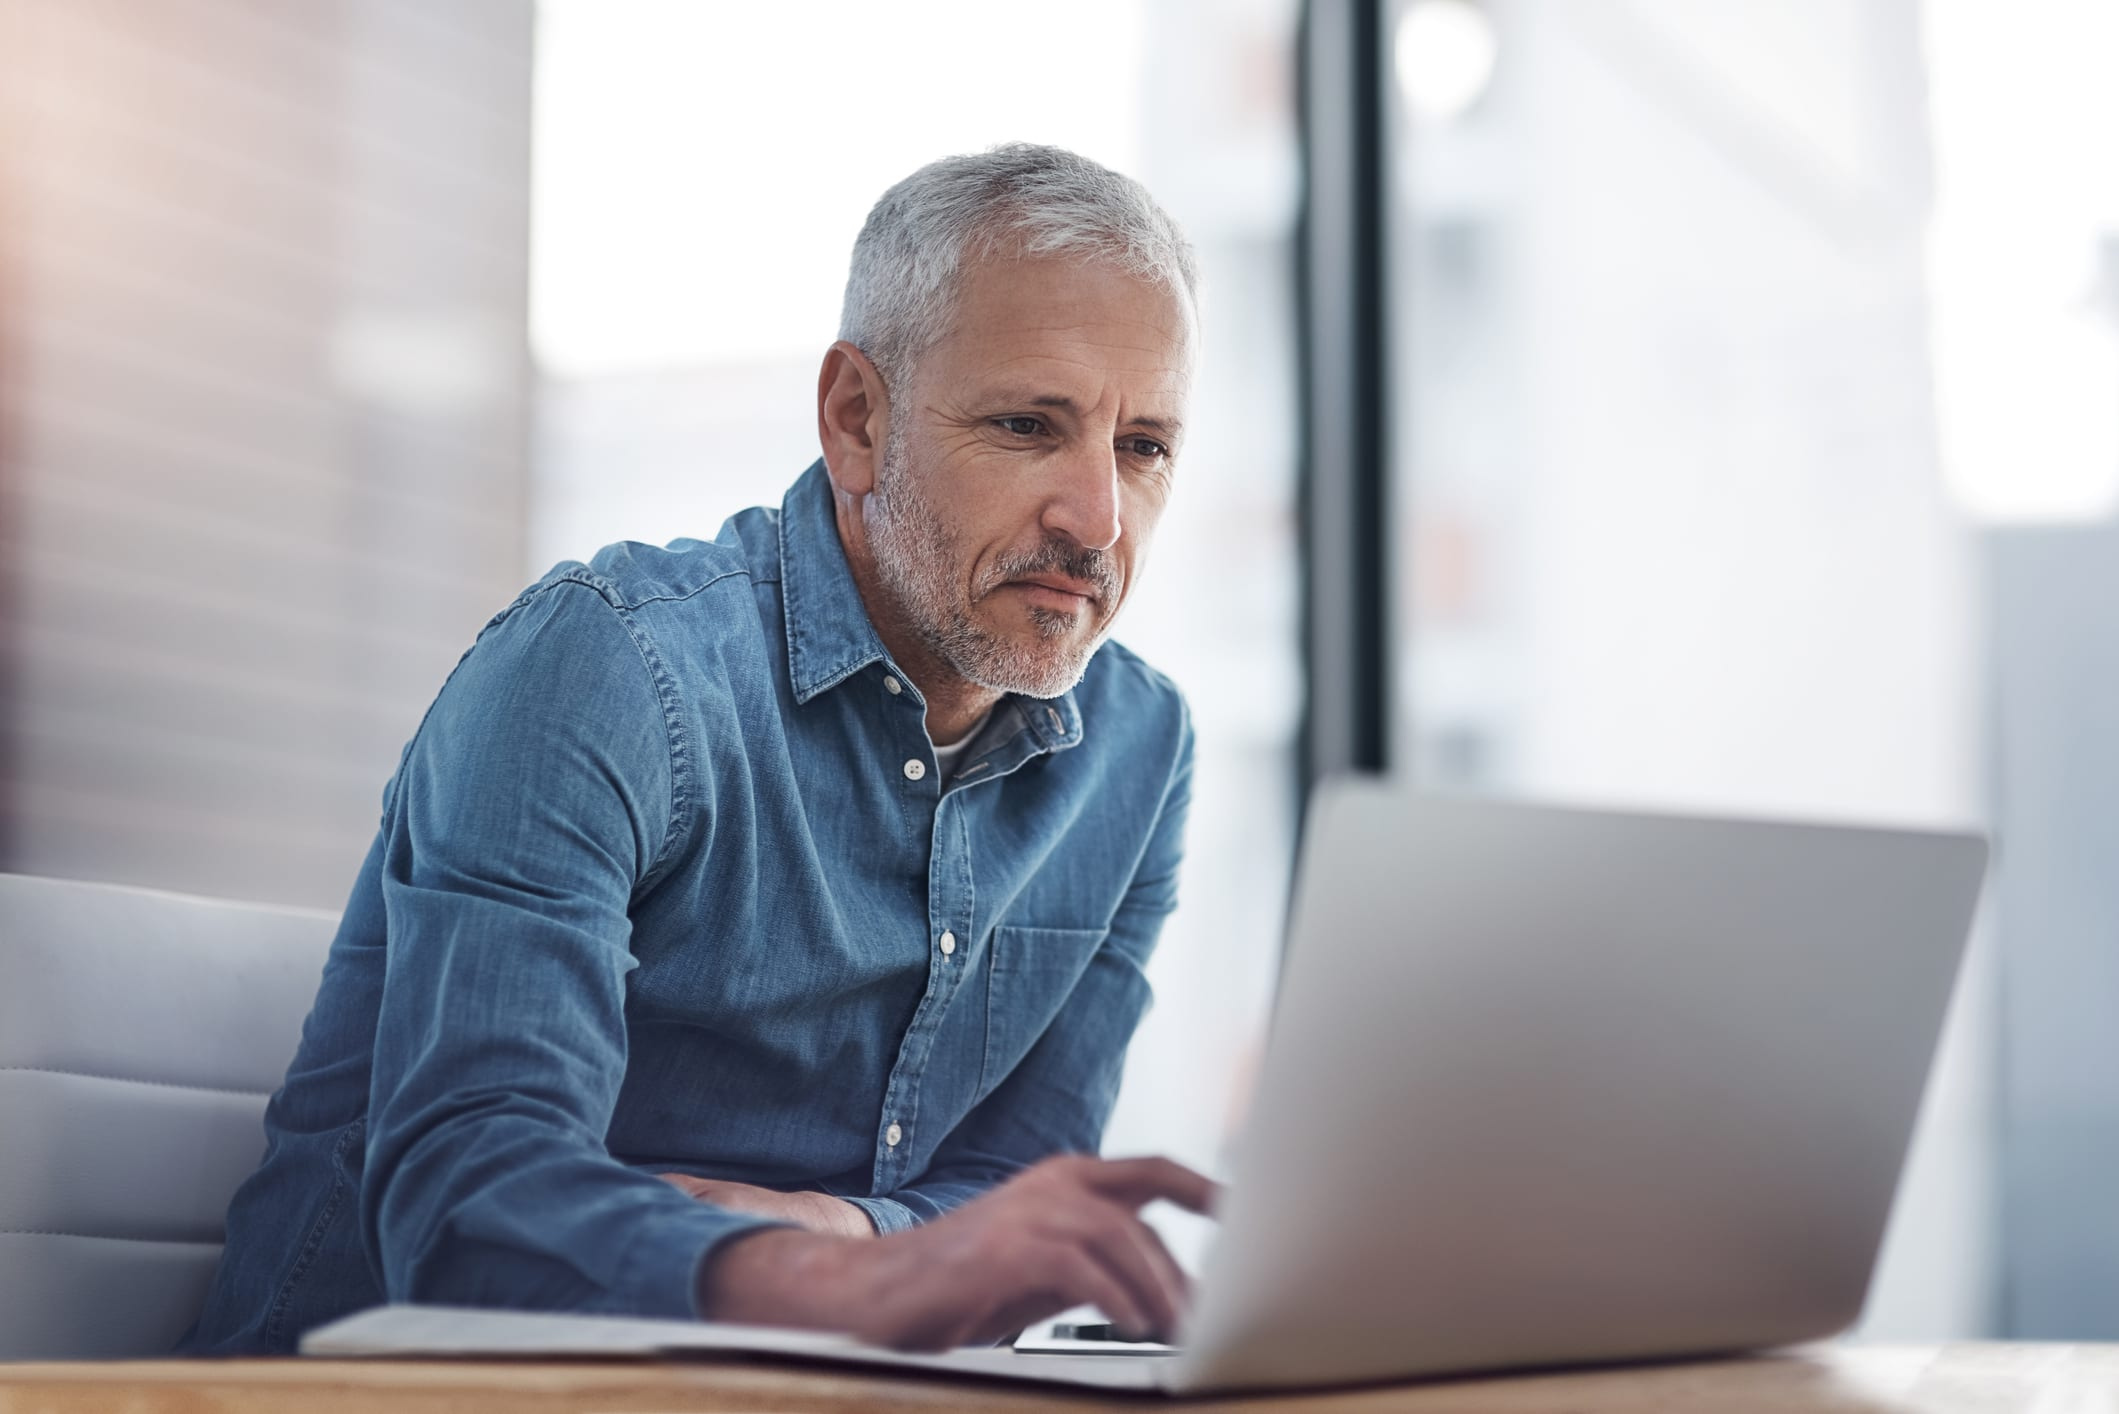 Cropped shot of a mature businessman working on a laptop in an office